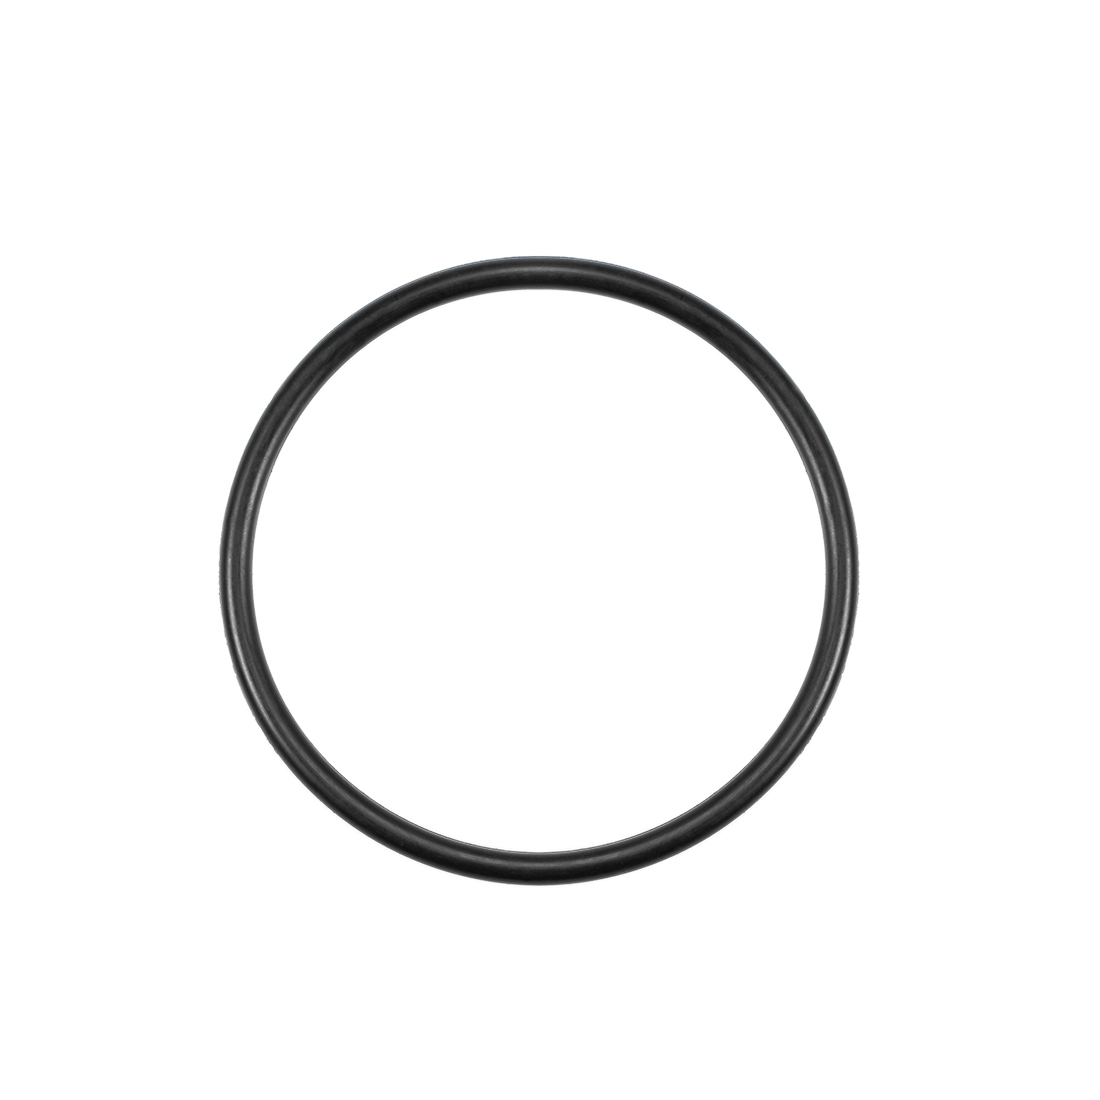 O-Rings Nitrile Rubber 21mm x 29mm x 4mm Round Seal Gasket 10Pcs